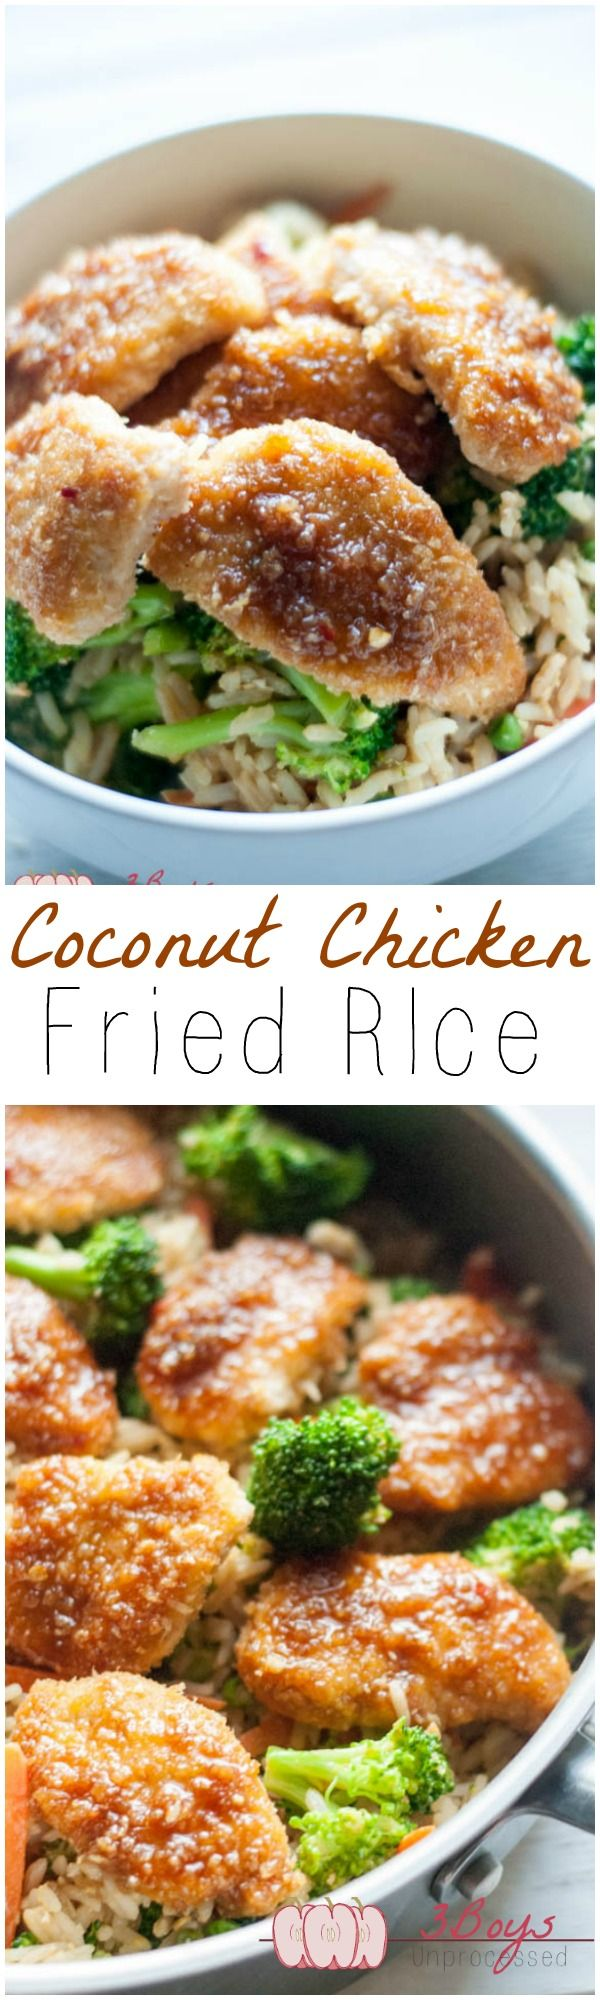 Coconut Chicken Fried Rice. Takeout style without the unhealthy oils and mystery ingredients!